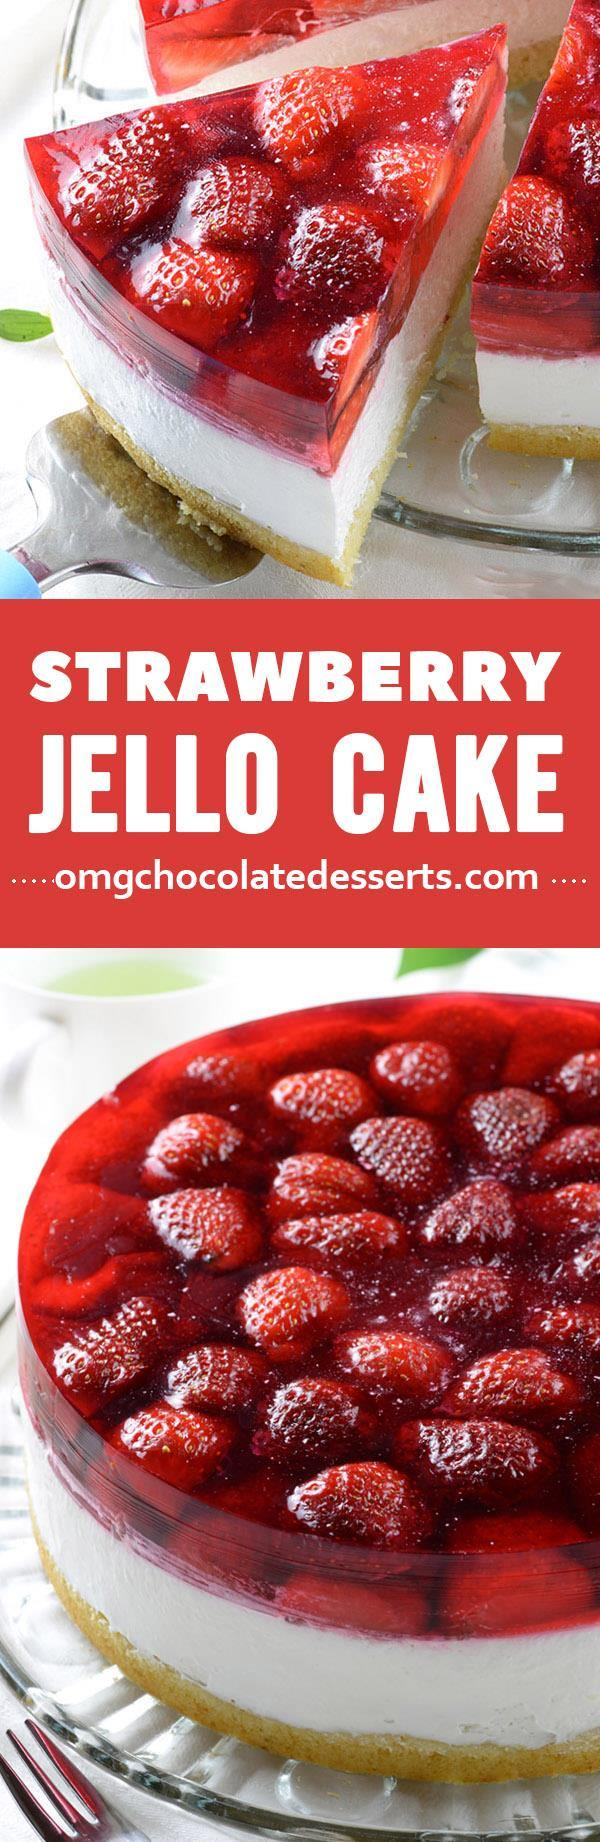 Angel Food Cake With Jello Inside